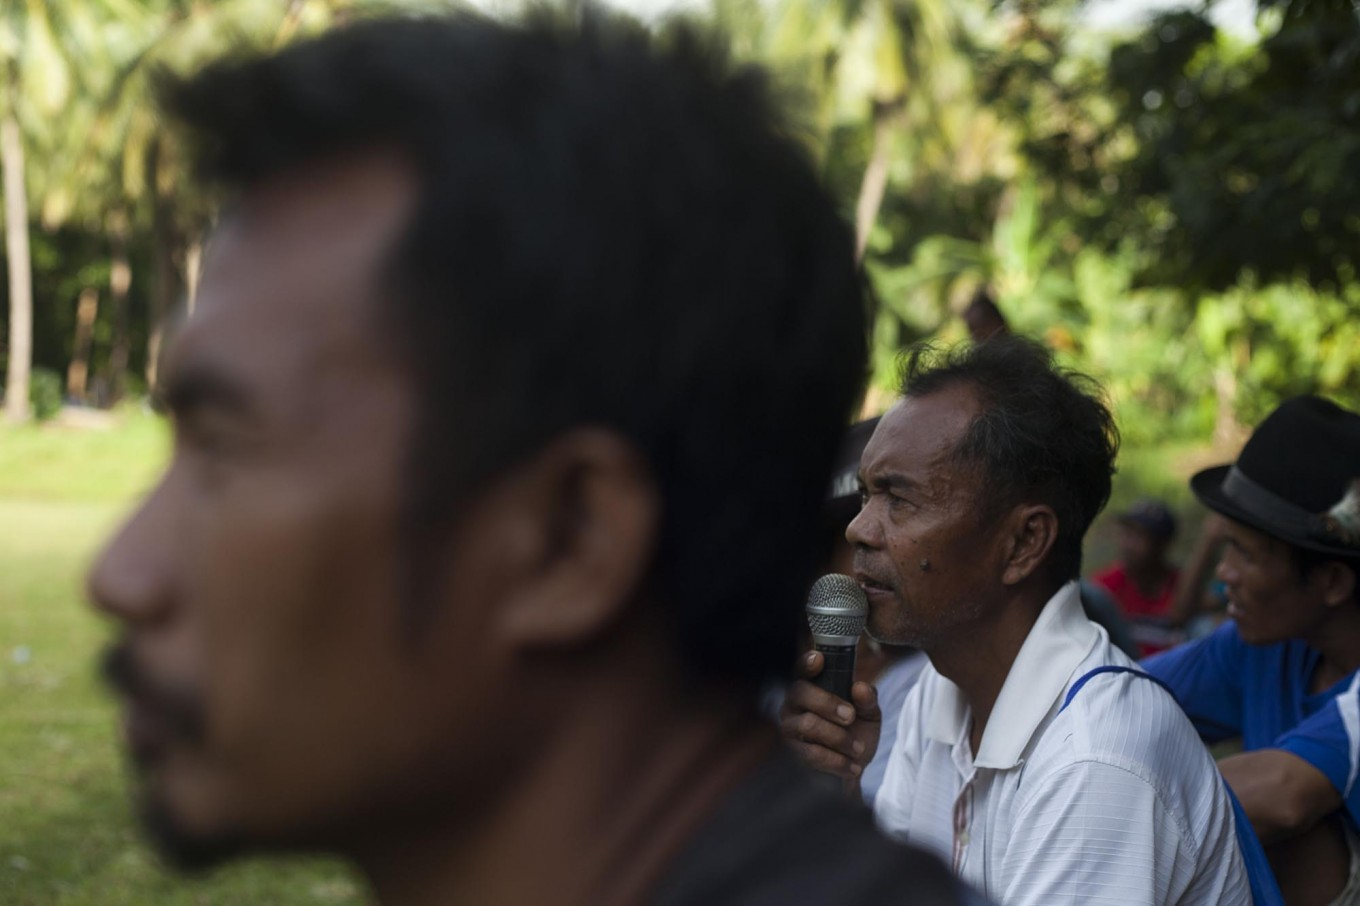 A man shouts instruction through a microphone at the event. JP/Sigit Pamungkas